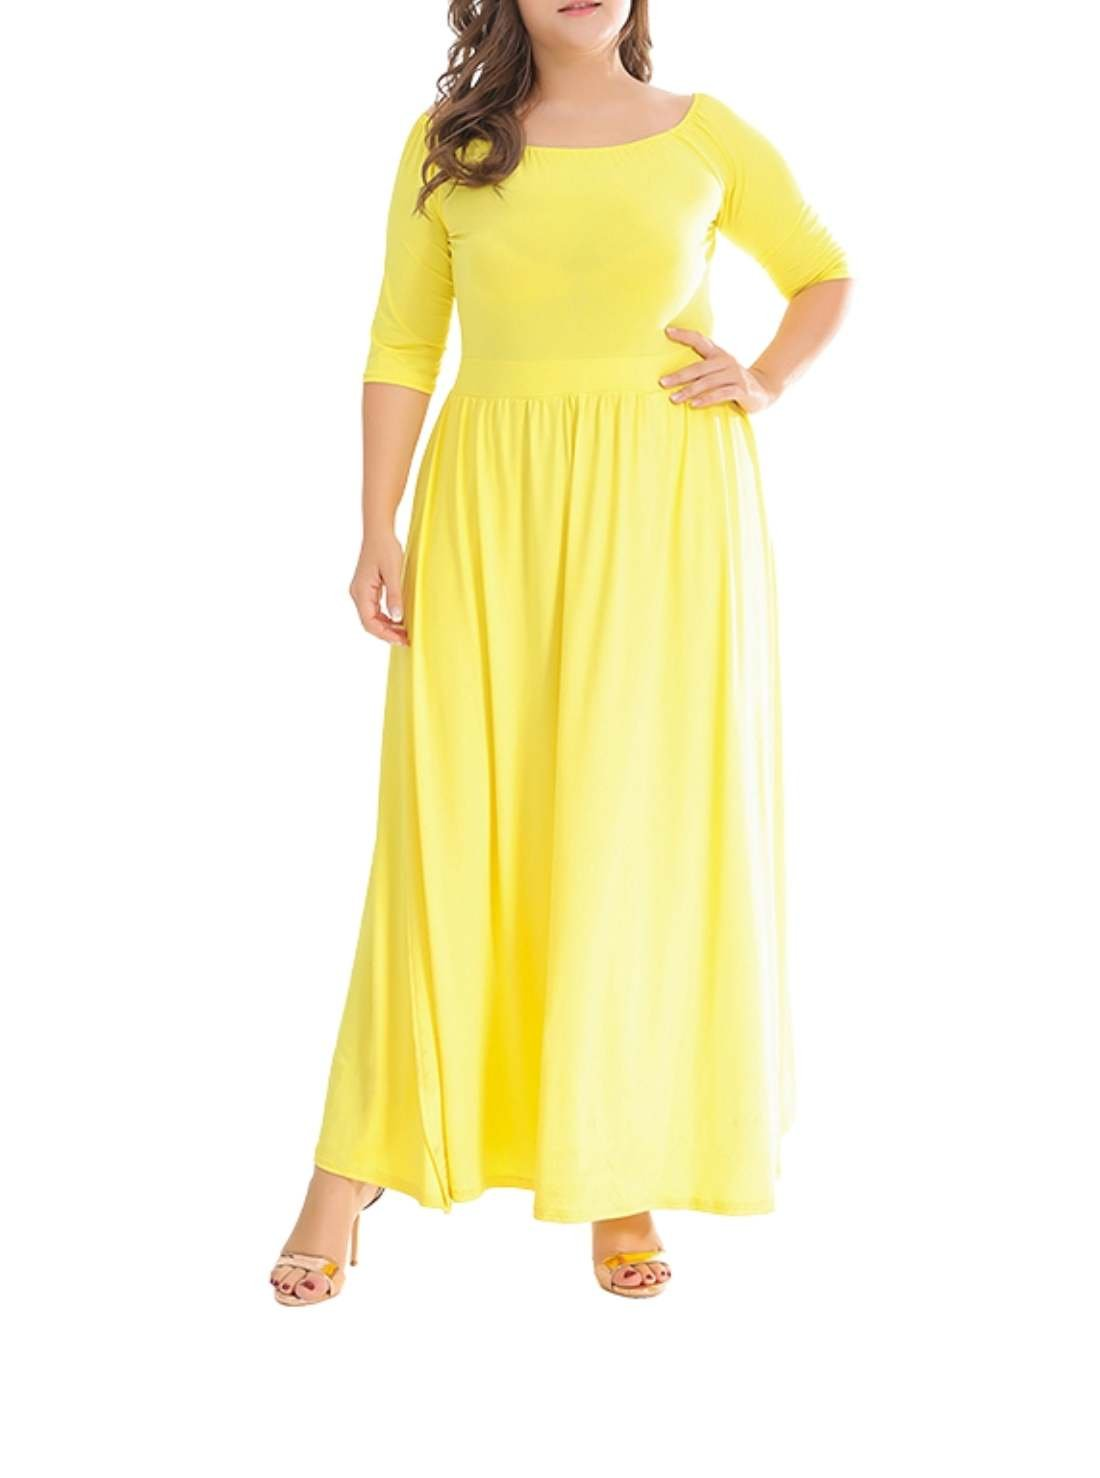 Solid Color Petite Clothing